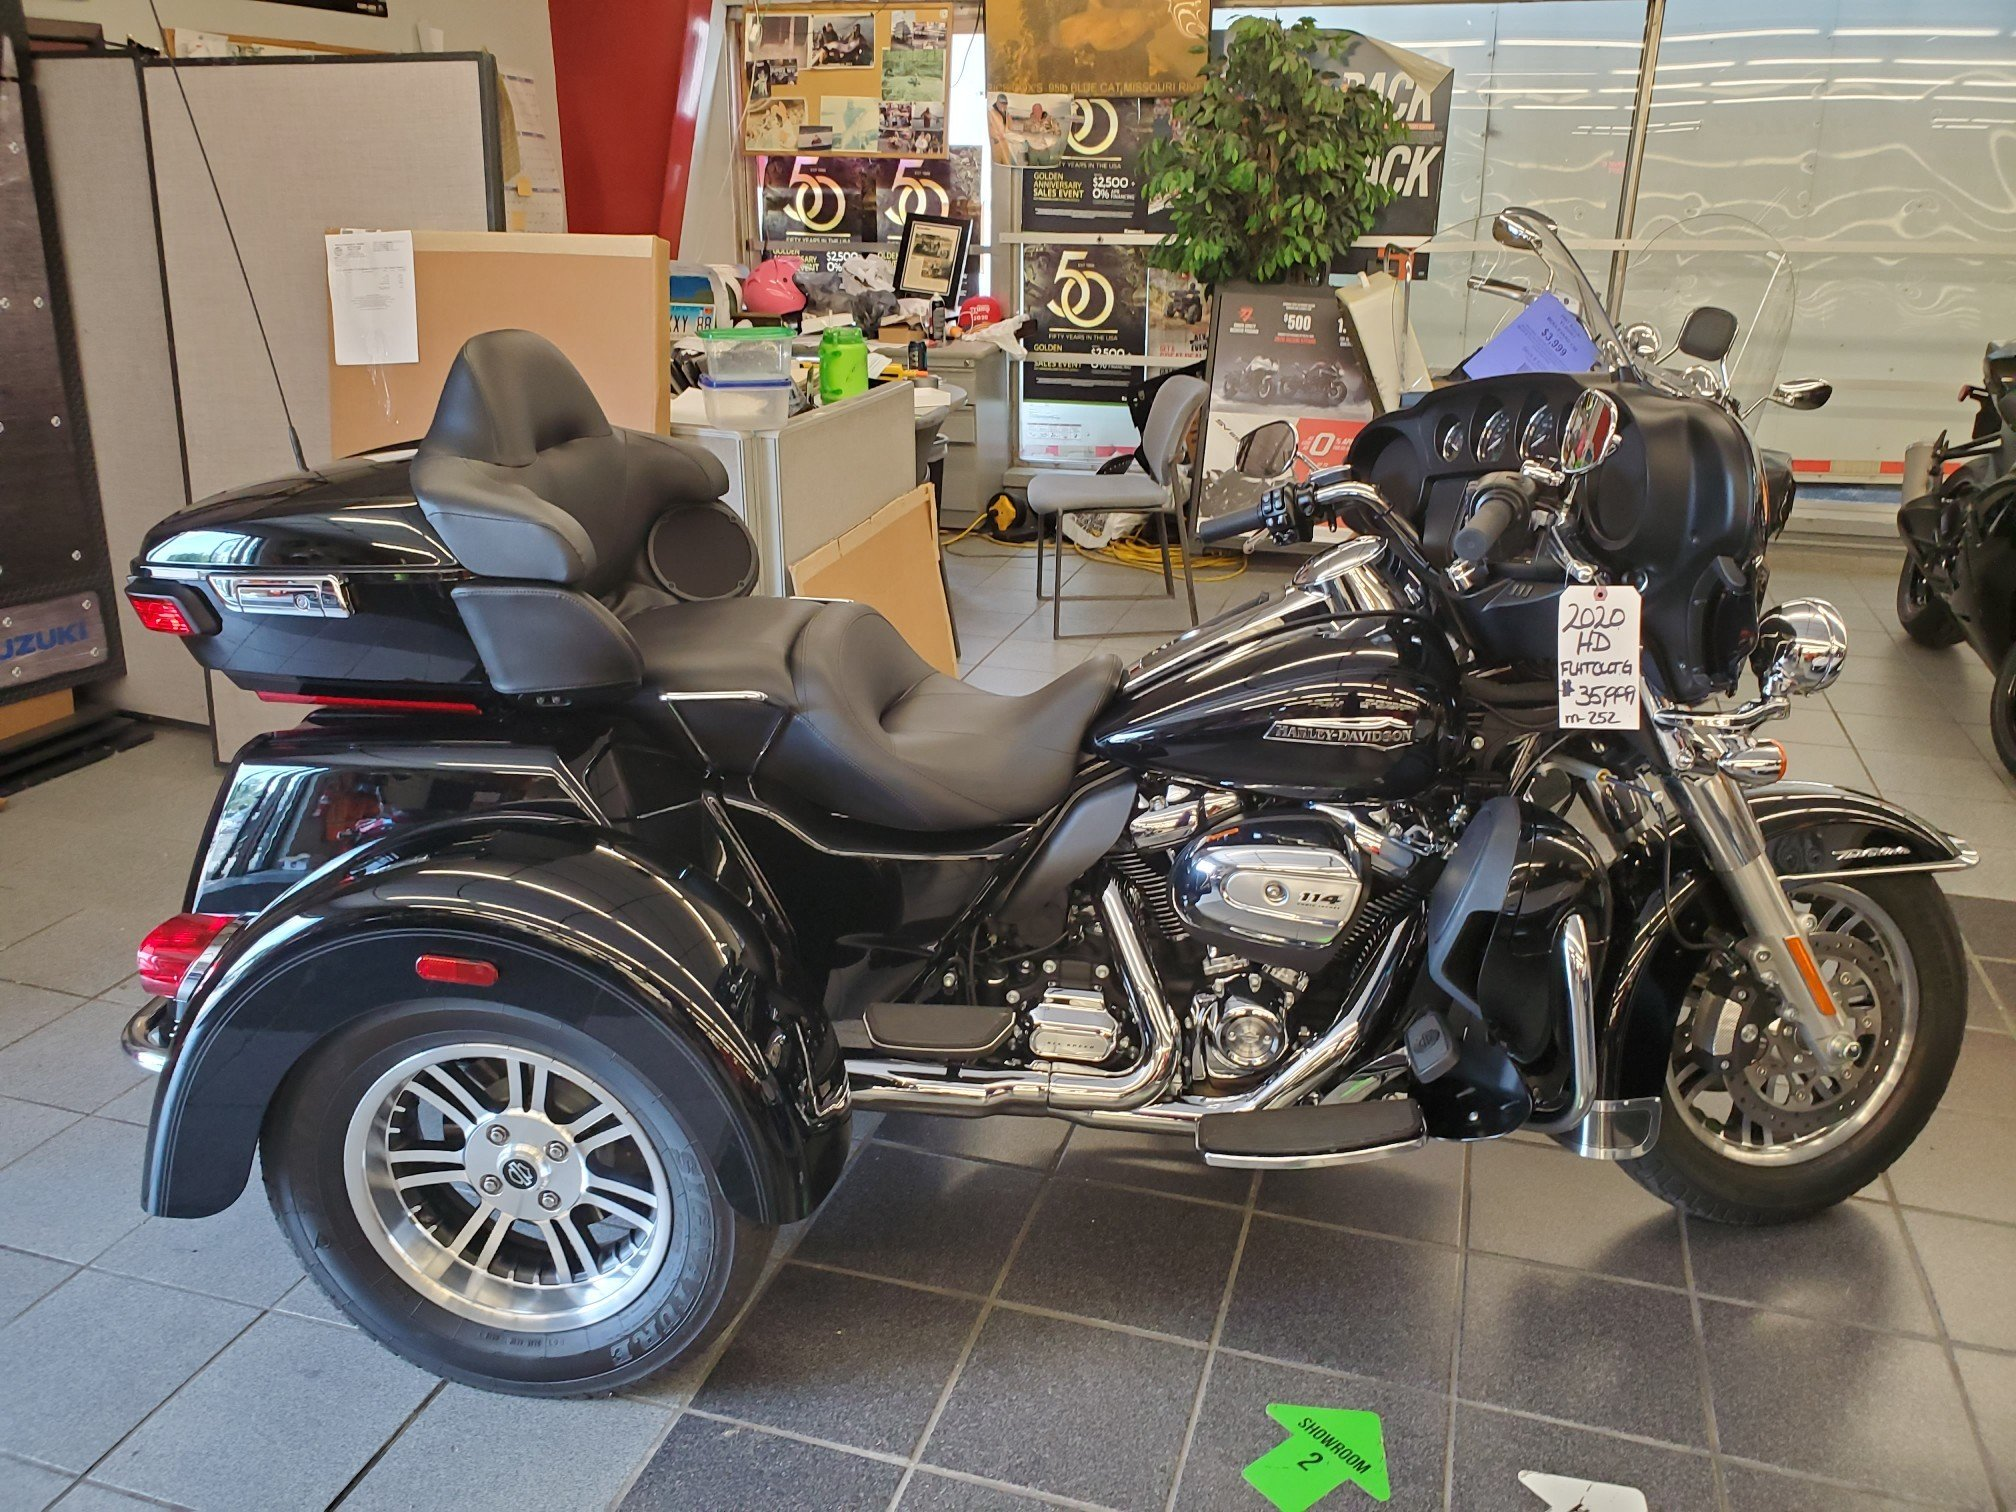 2020 Harley Davidson Trike Tri Glide Ultra For Sale Near Decatur Illinois 62526 Motorcycles On Autotrader